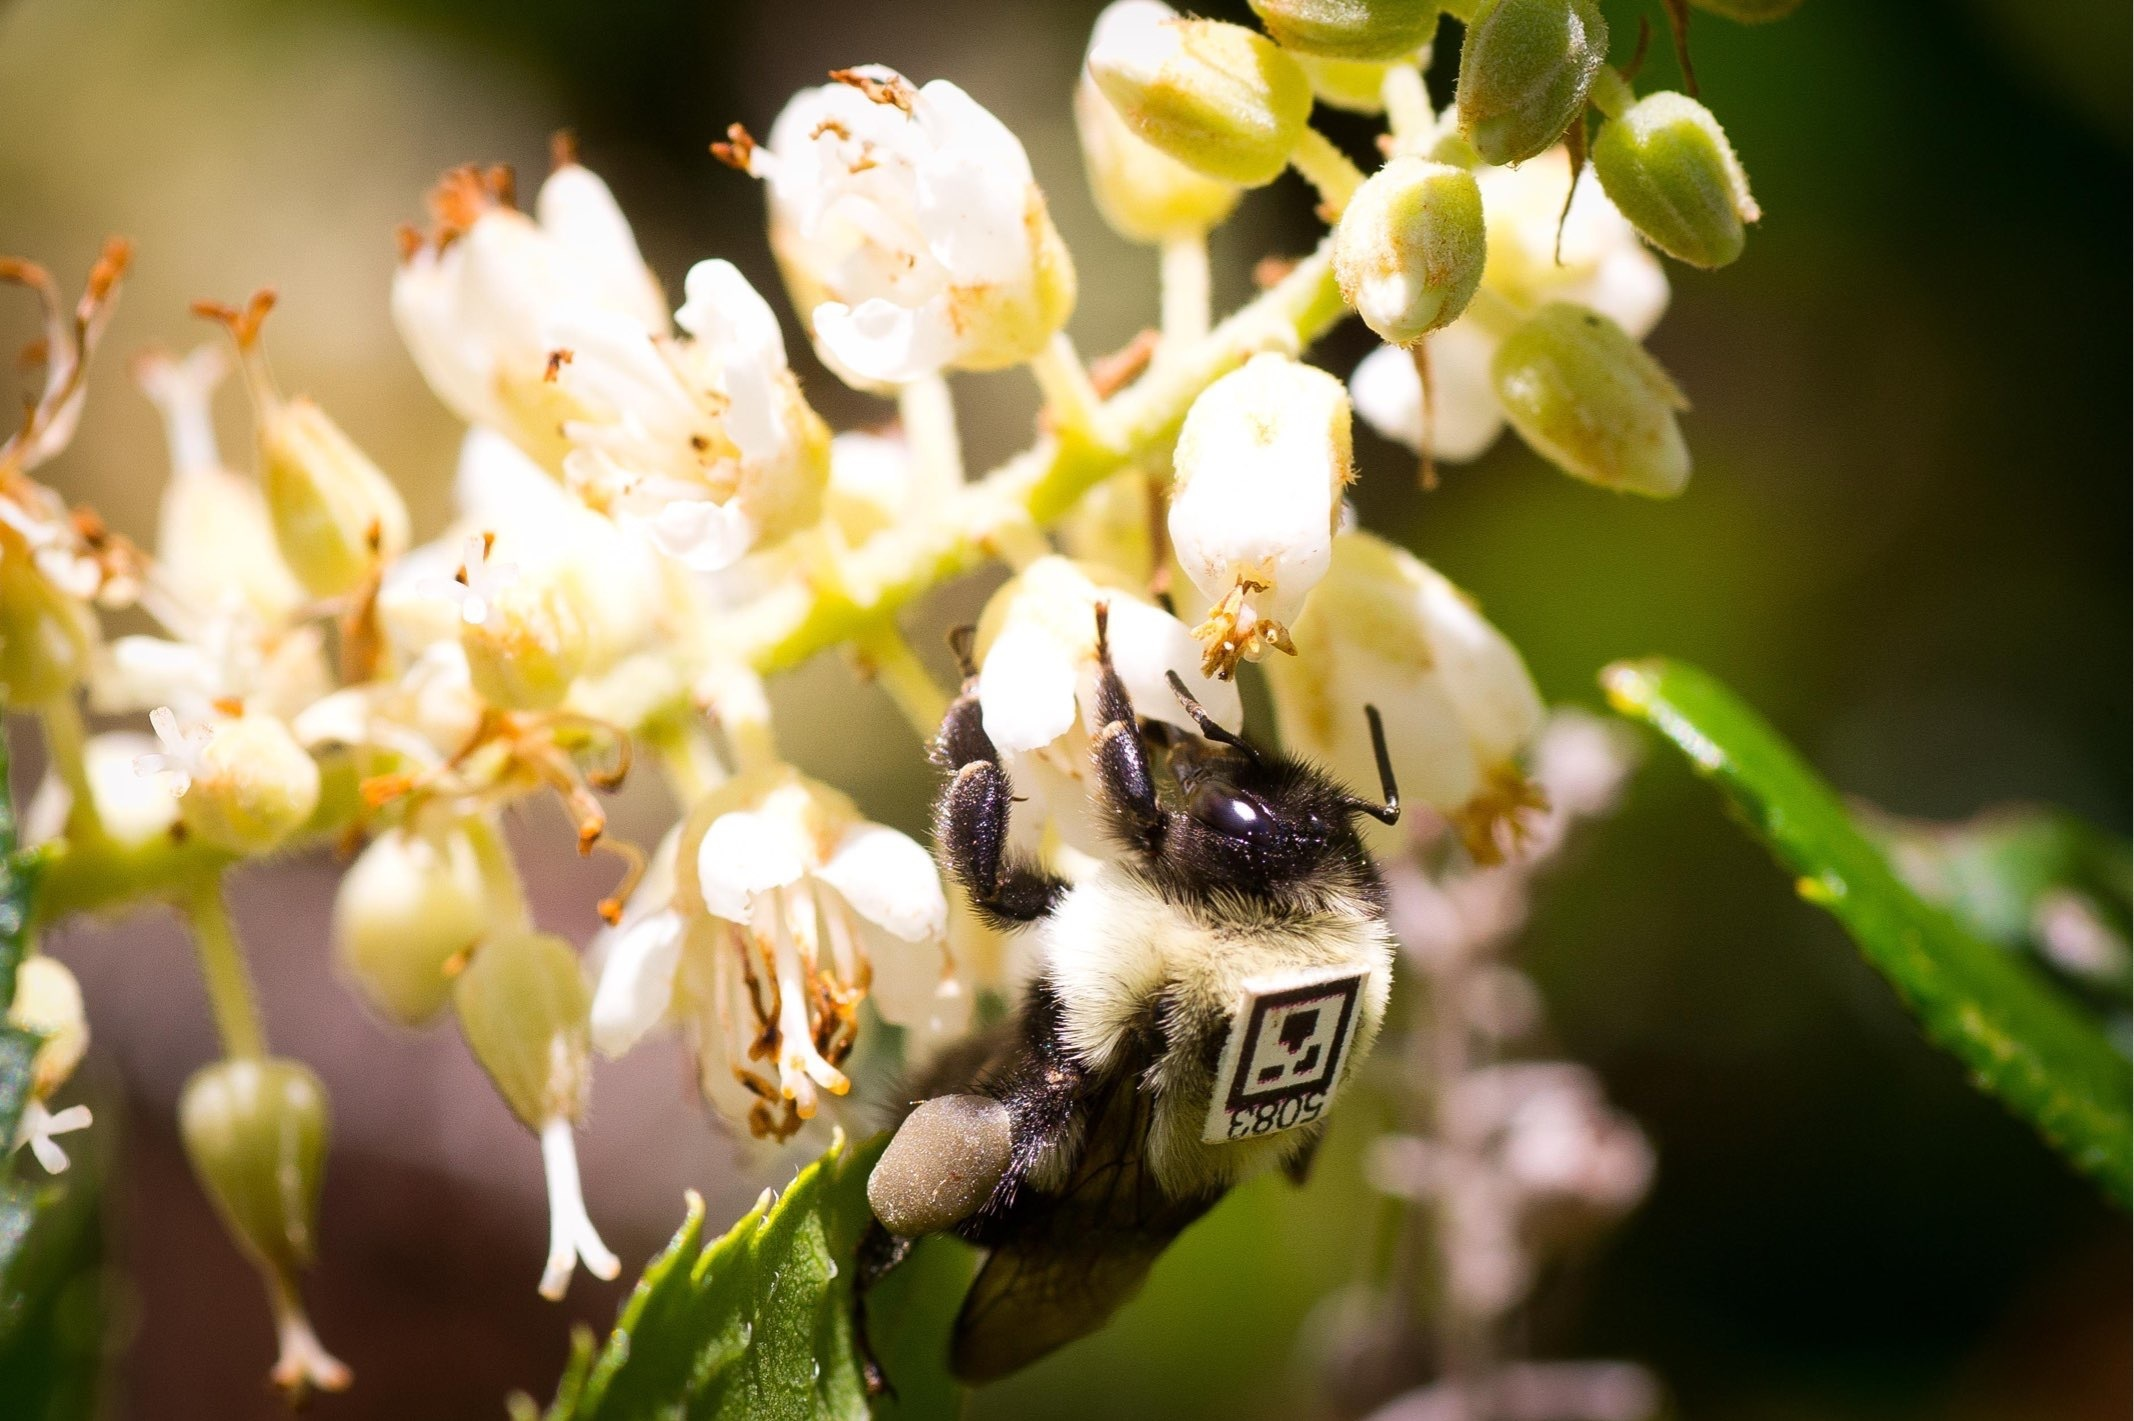 Scientists Spy On Bees, See Harmful Effects Of Common Insecticide